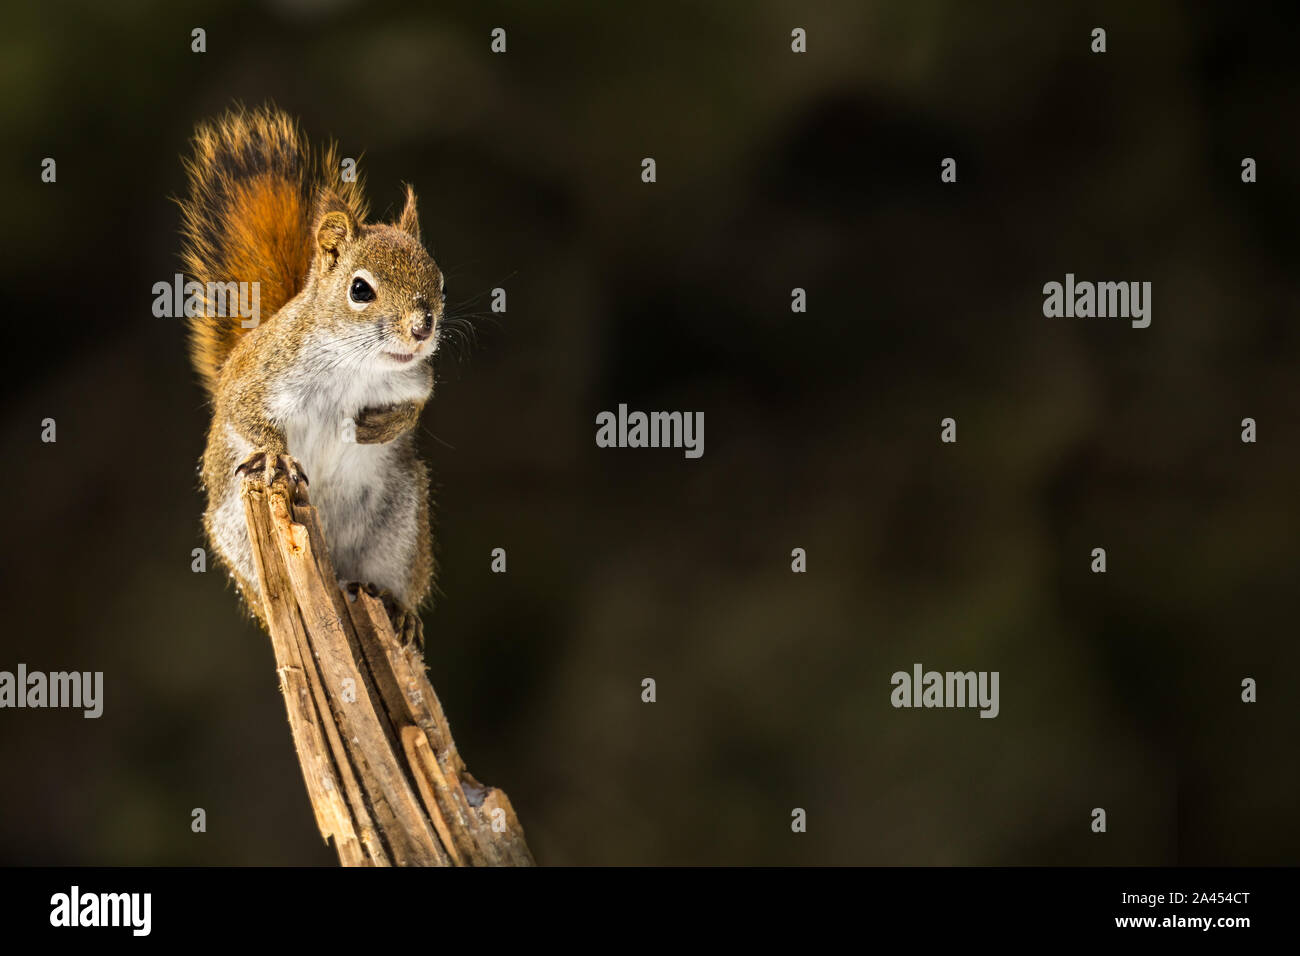 American Red Squirrel - Tamiasciurus hudsonicus, perched on a branch. making eye contact, snow flakes in it's face. Background is bokeh of pine trees. Stock Photo